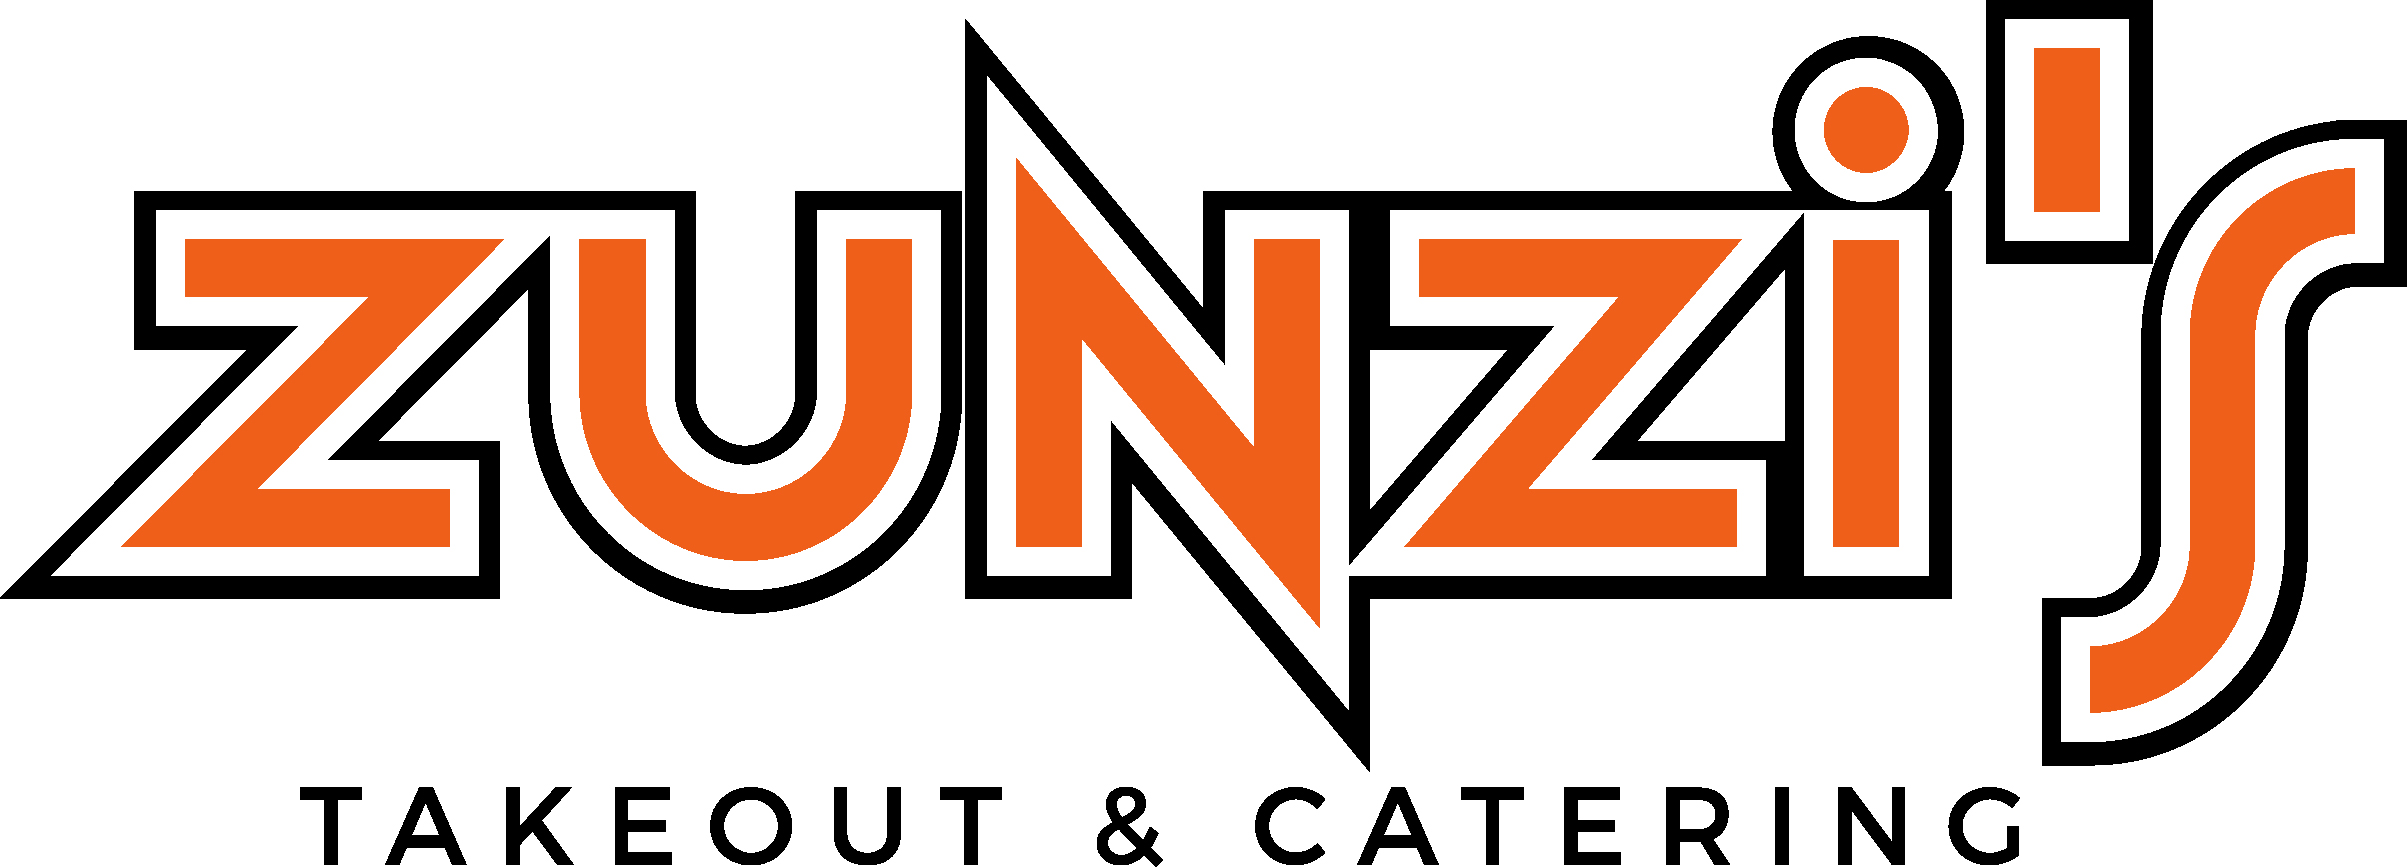 Zunzi's Takeout & Catering Home